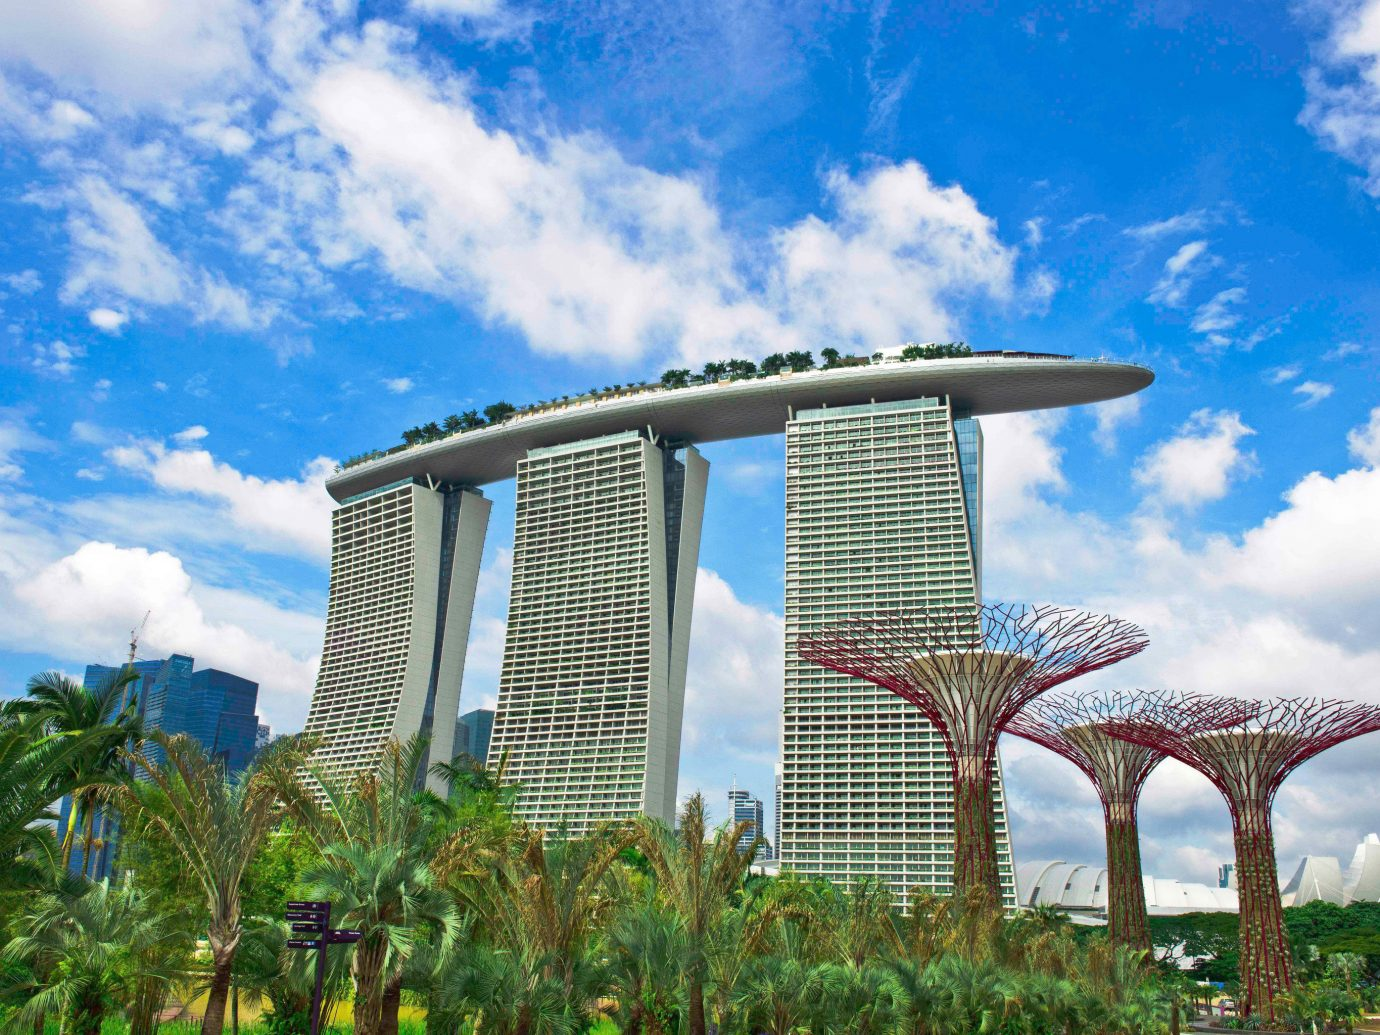 Exterior of Marina Bay Sands, Singapore